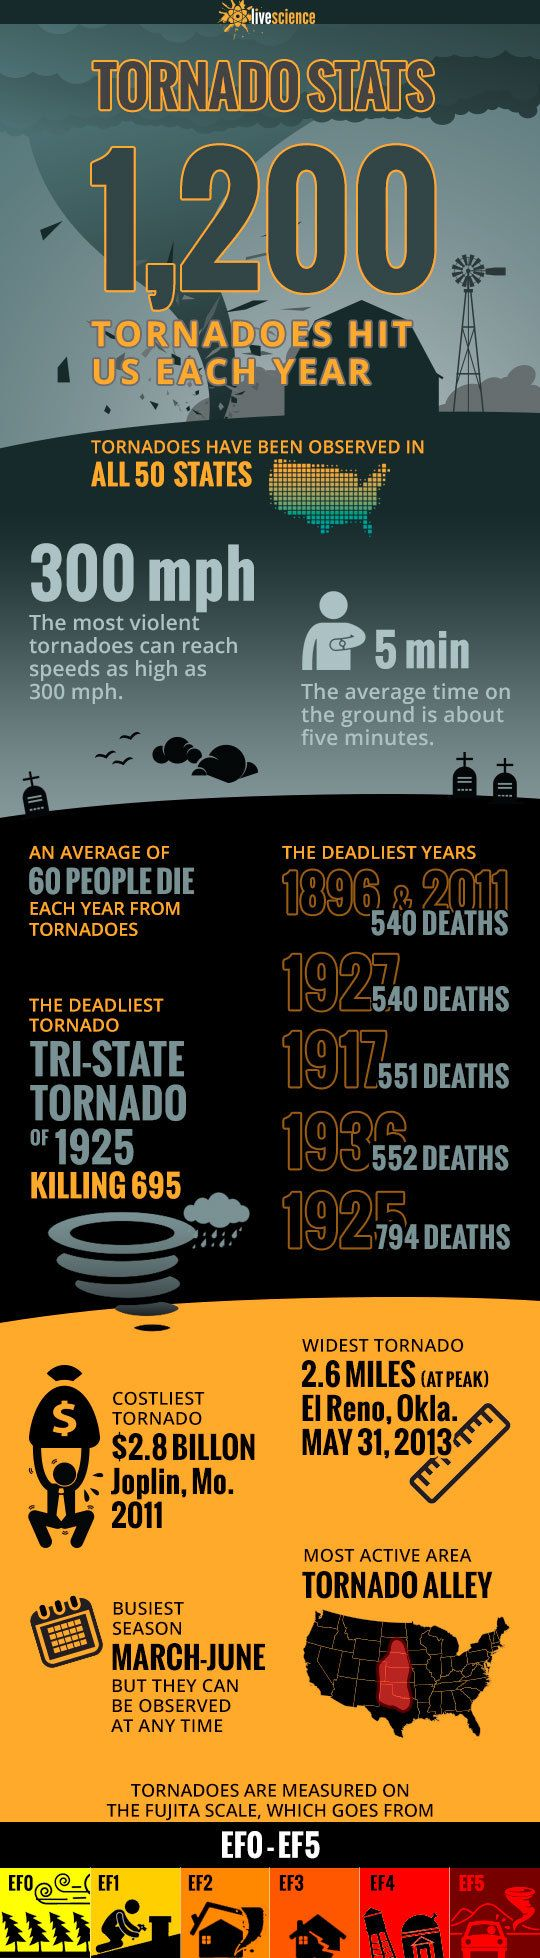 Twisted Tornado Facts to Know